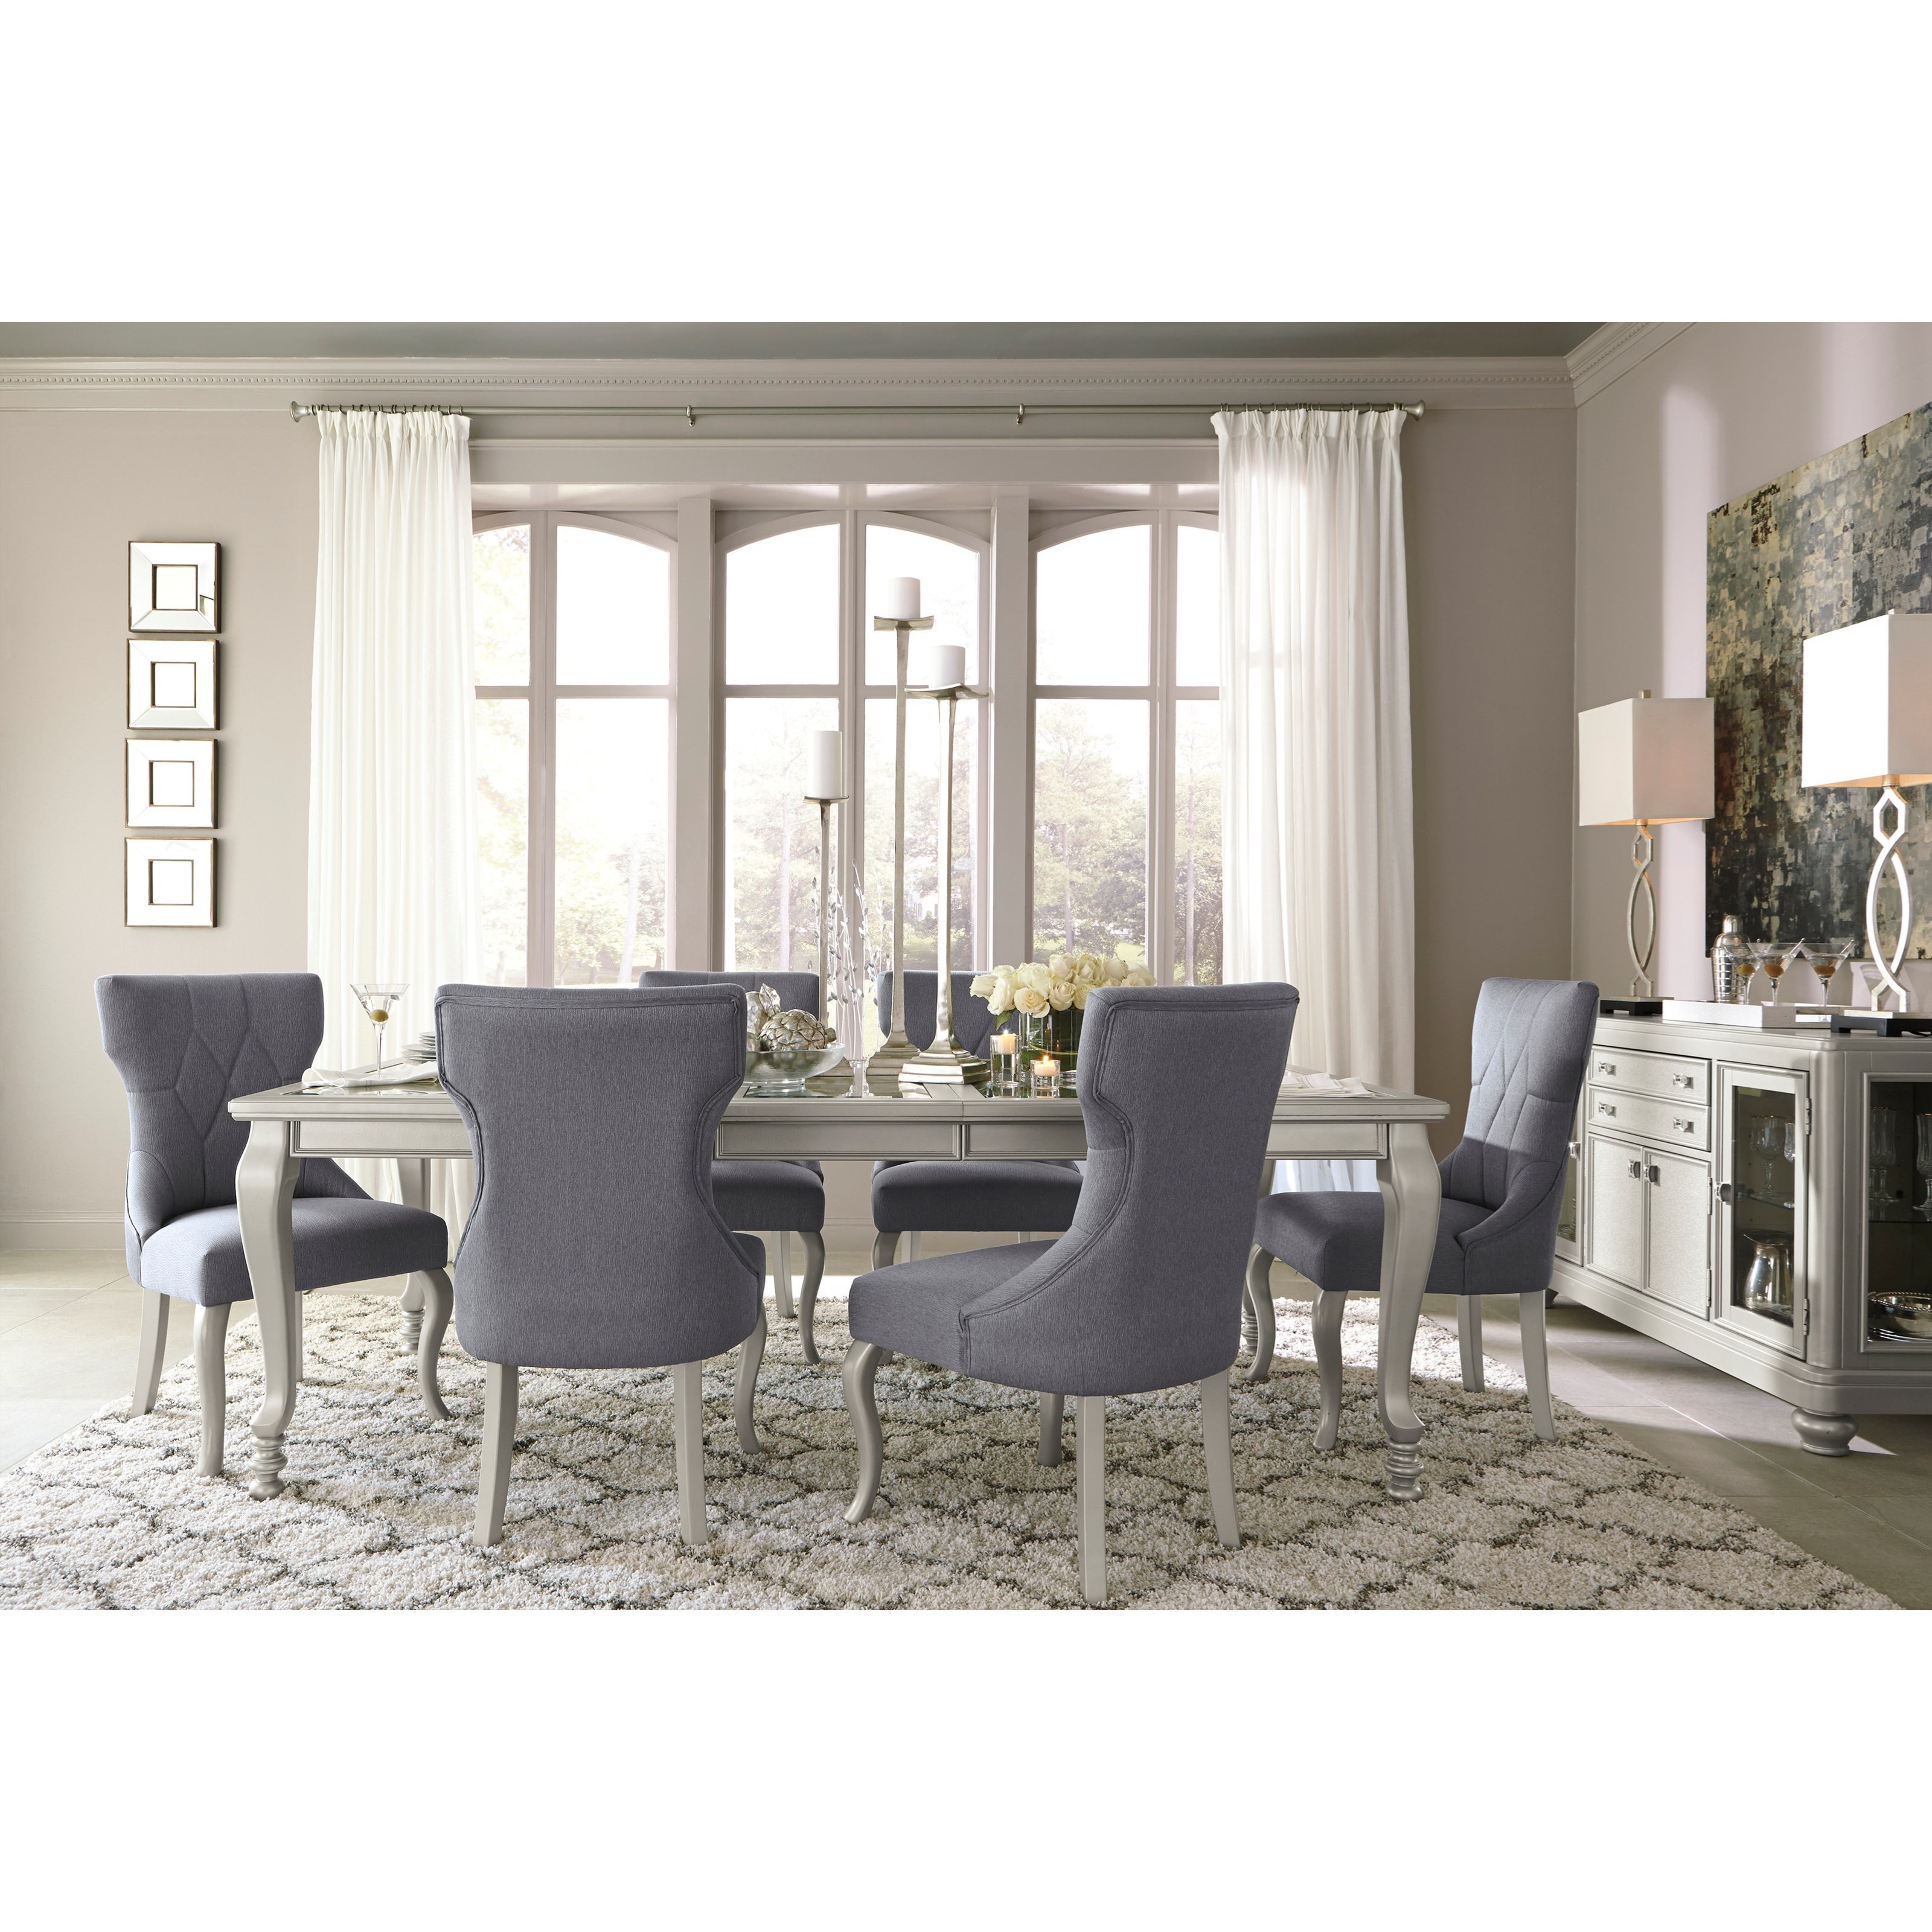 Ashley D Coralayne Dining Room Table Set